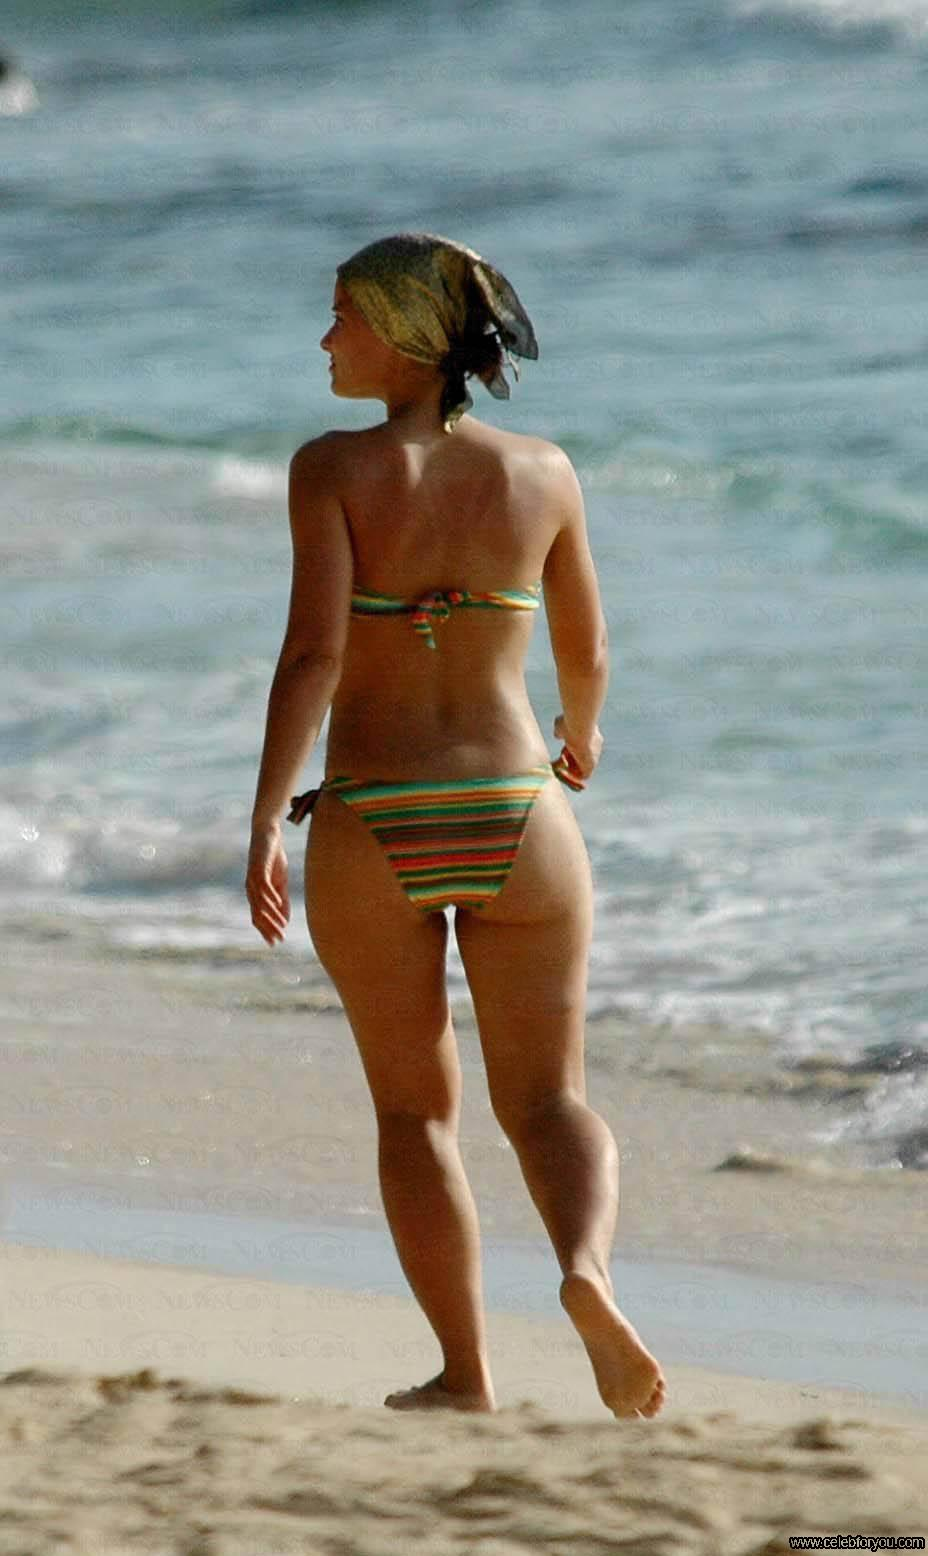 keira knightley ass